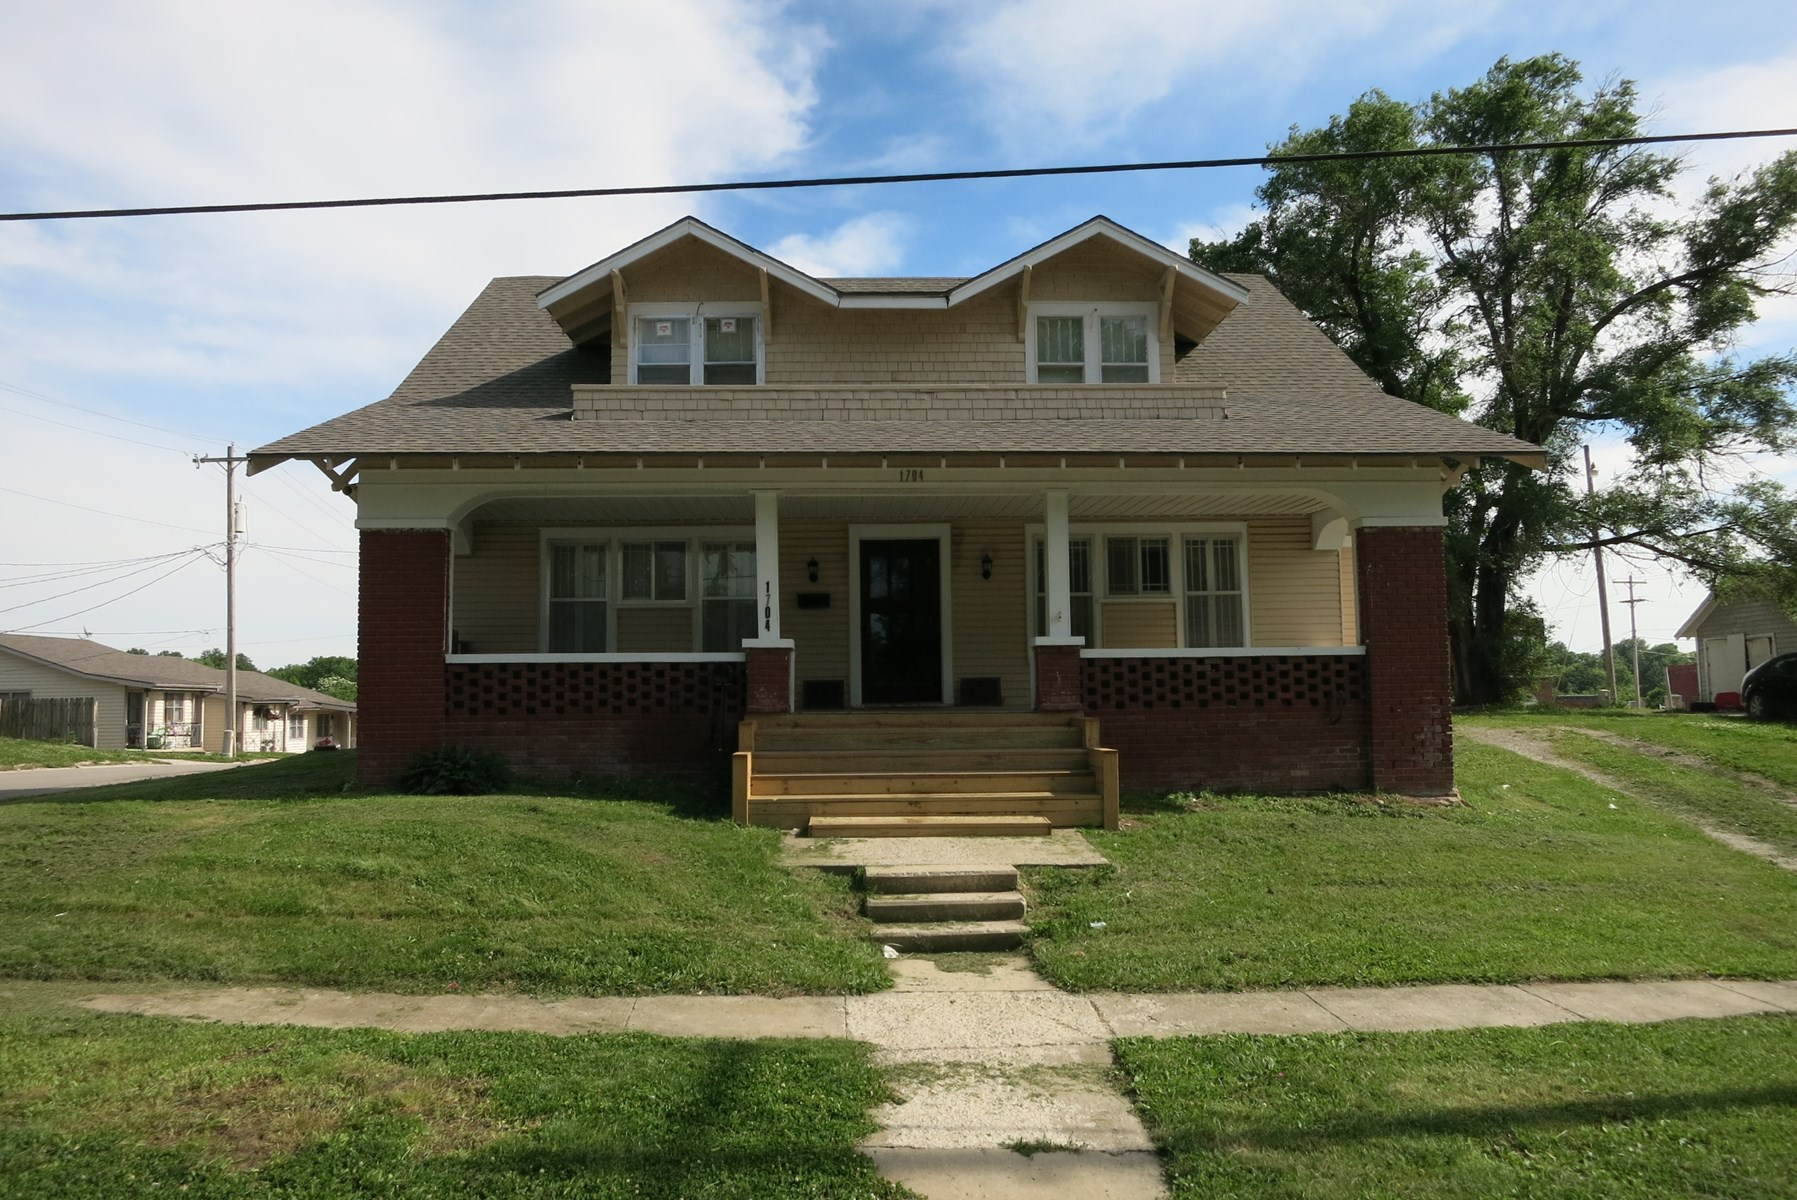 For Sale Two Story 4 BR Home in Bethany Missouri